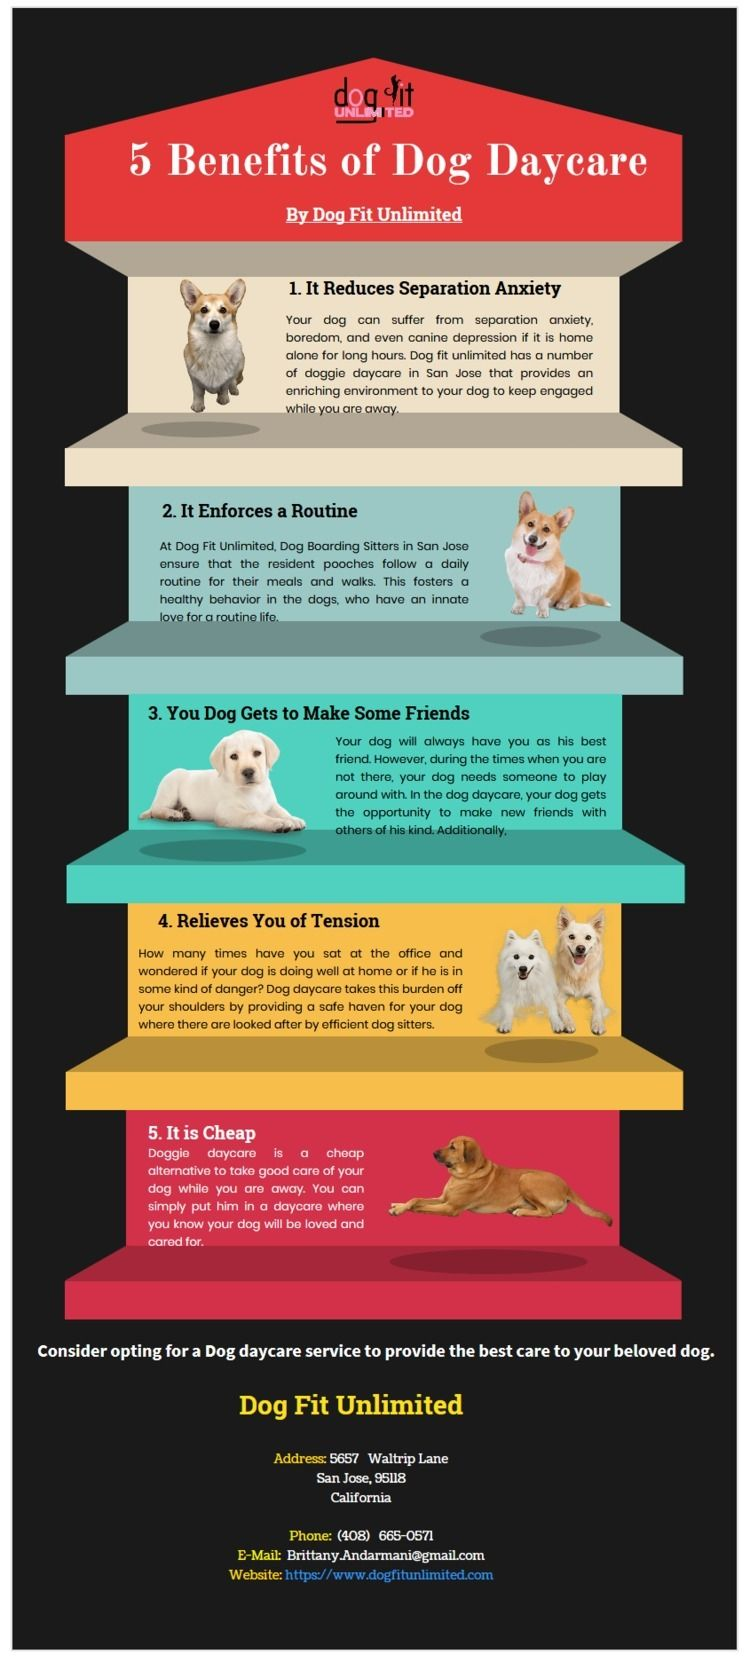 5 Major Benefits Dog Daycare Sa - dogfitunlimited | ello